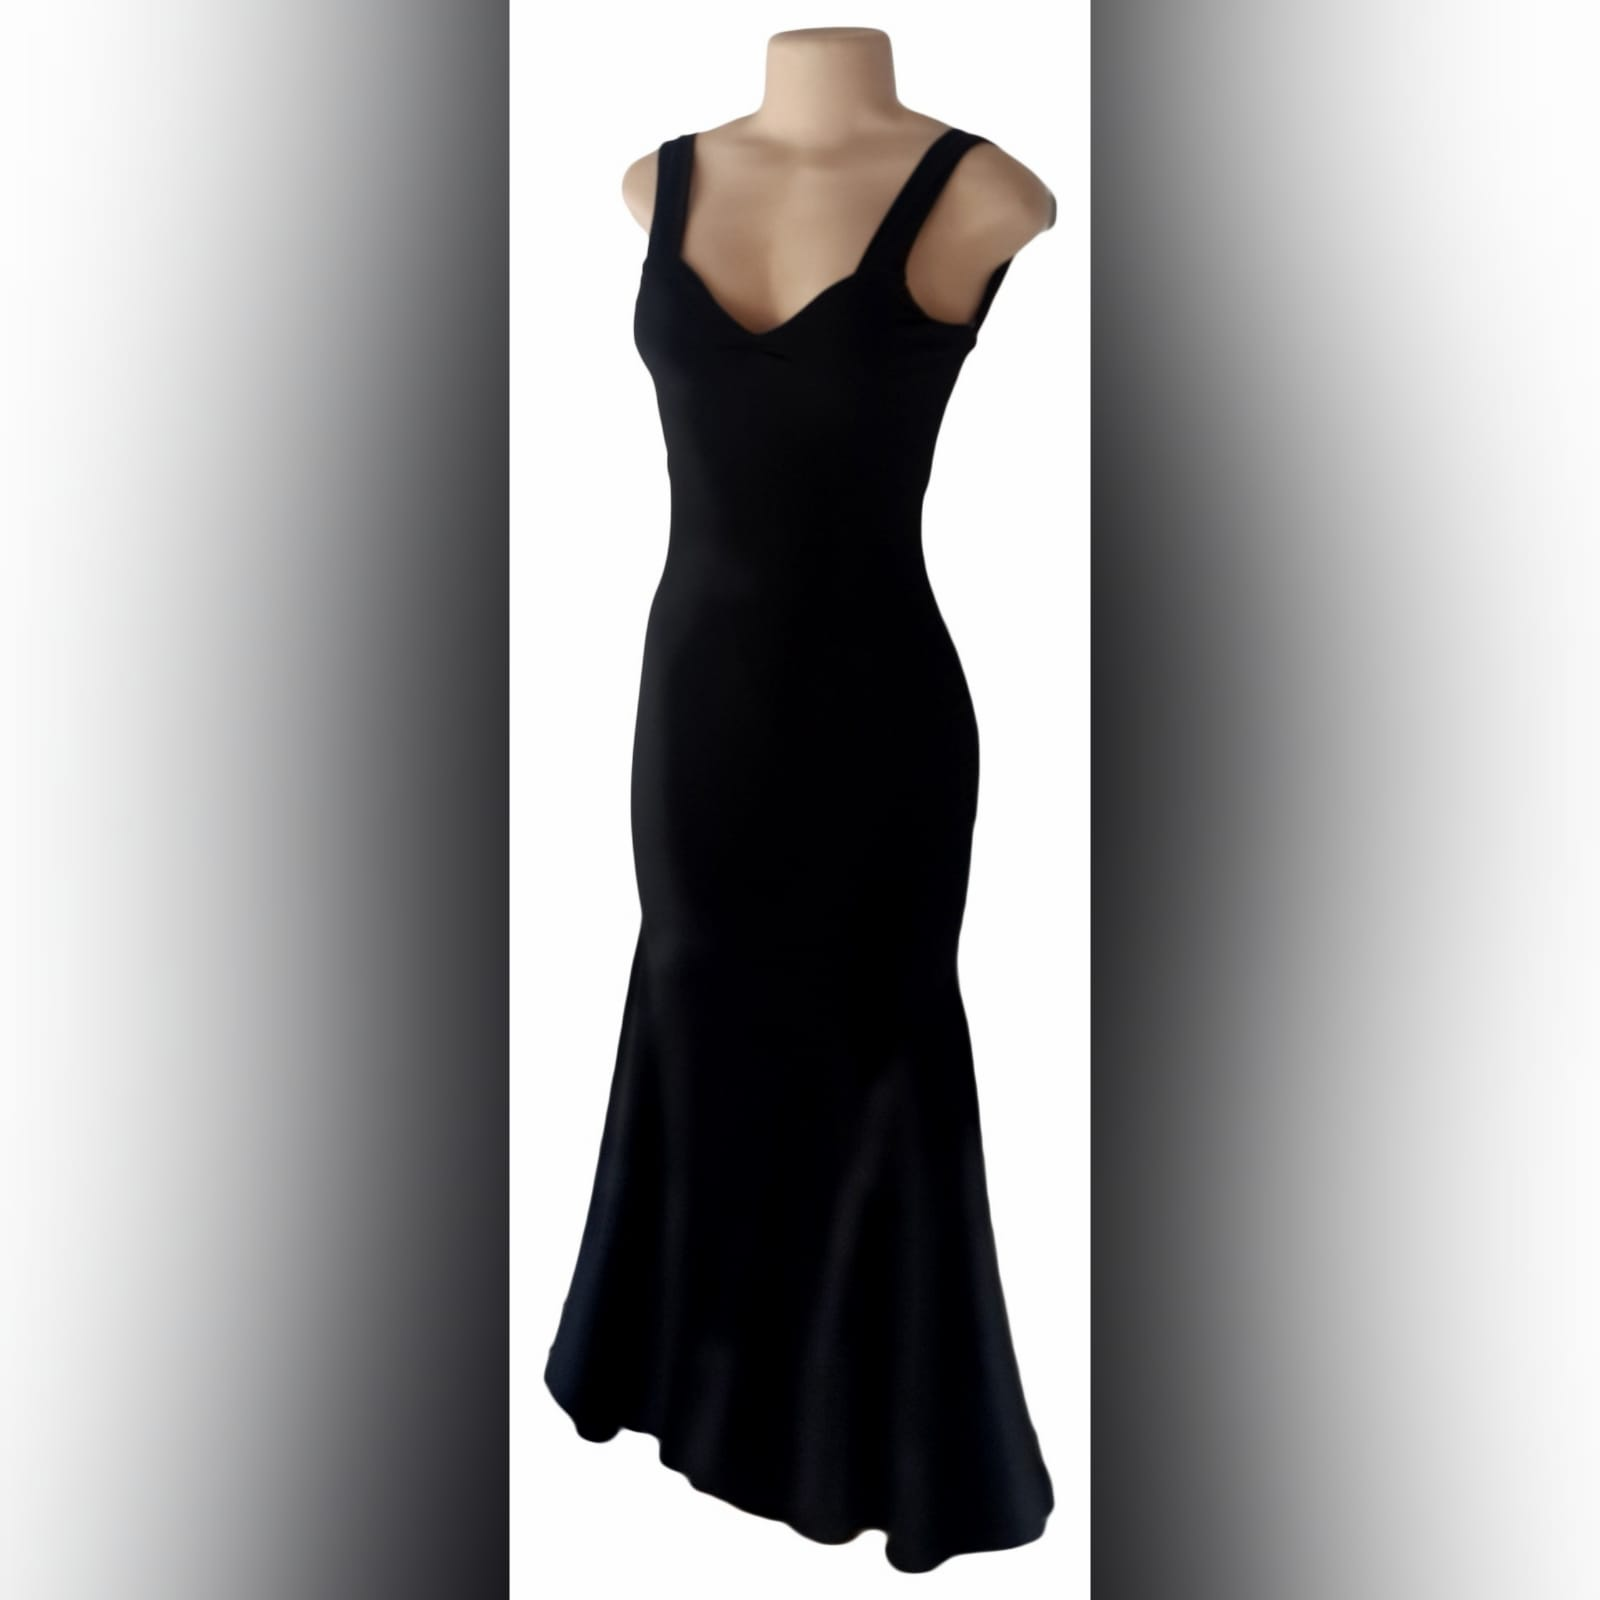 Black sexy evening dress fitted till the hip 1 black sexy evening dress fitted till the hip, with a low v open back. Straps with a sweetheart neckline.